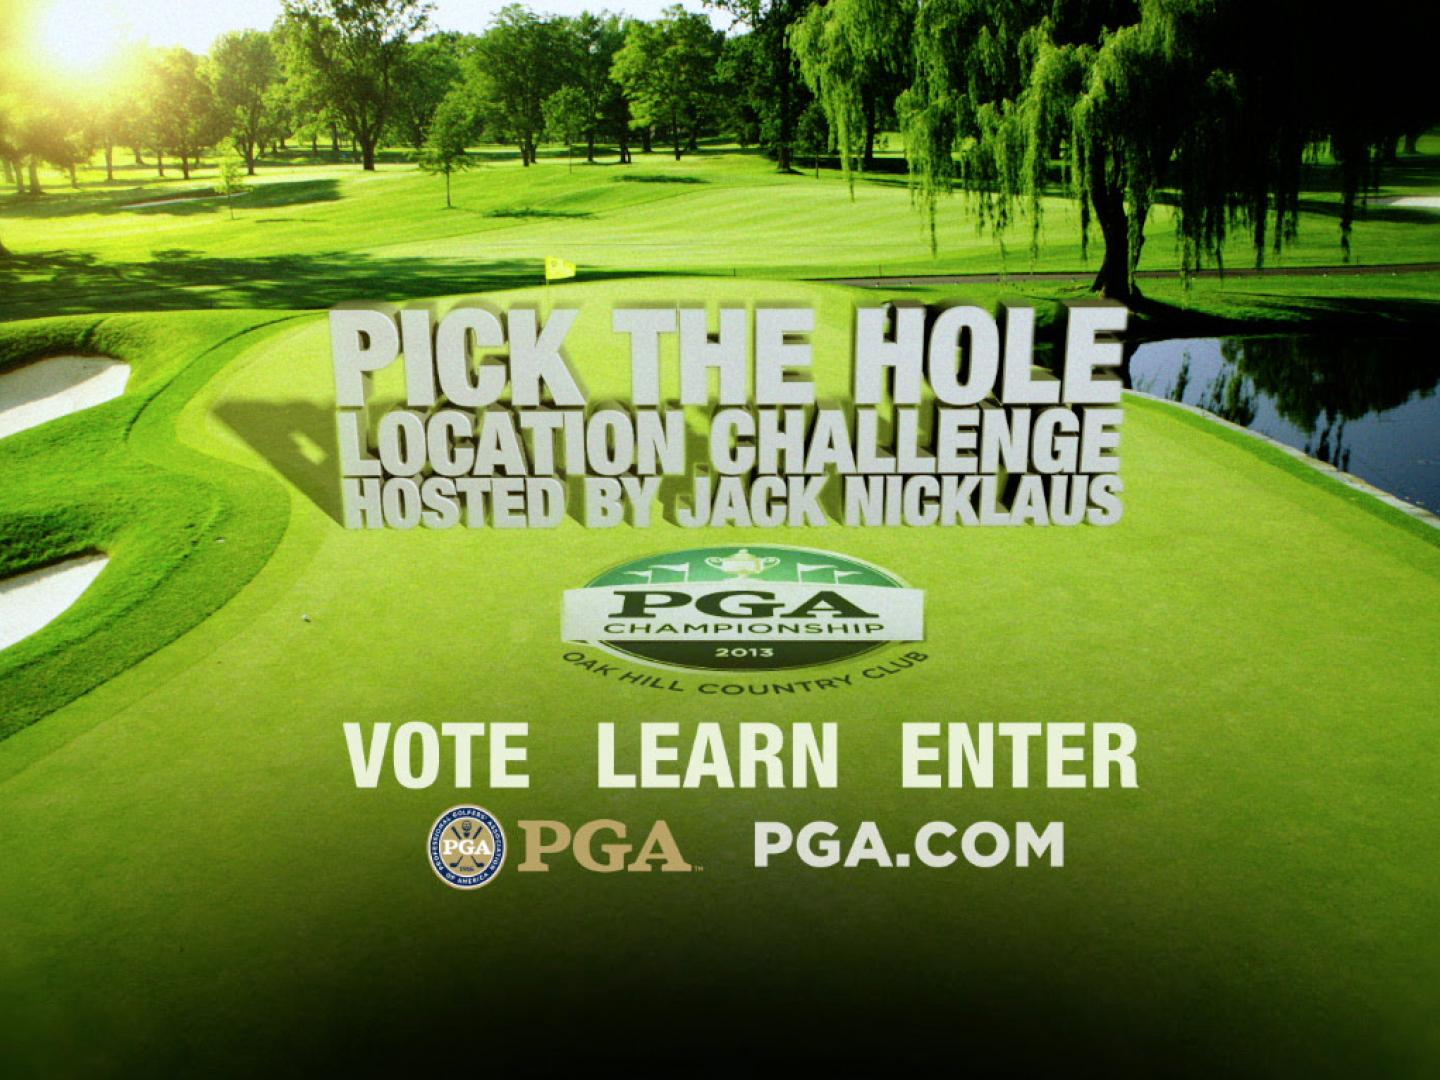 PGA Championship Pick the Hole Thumbnail